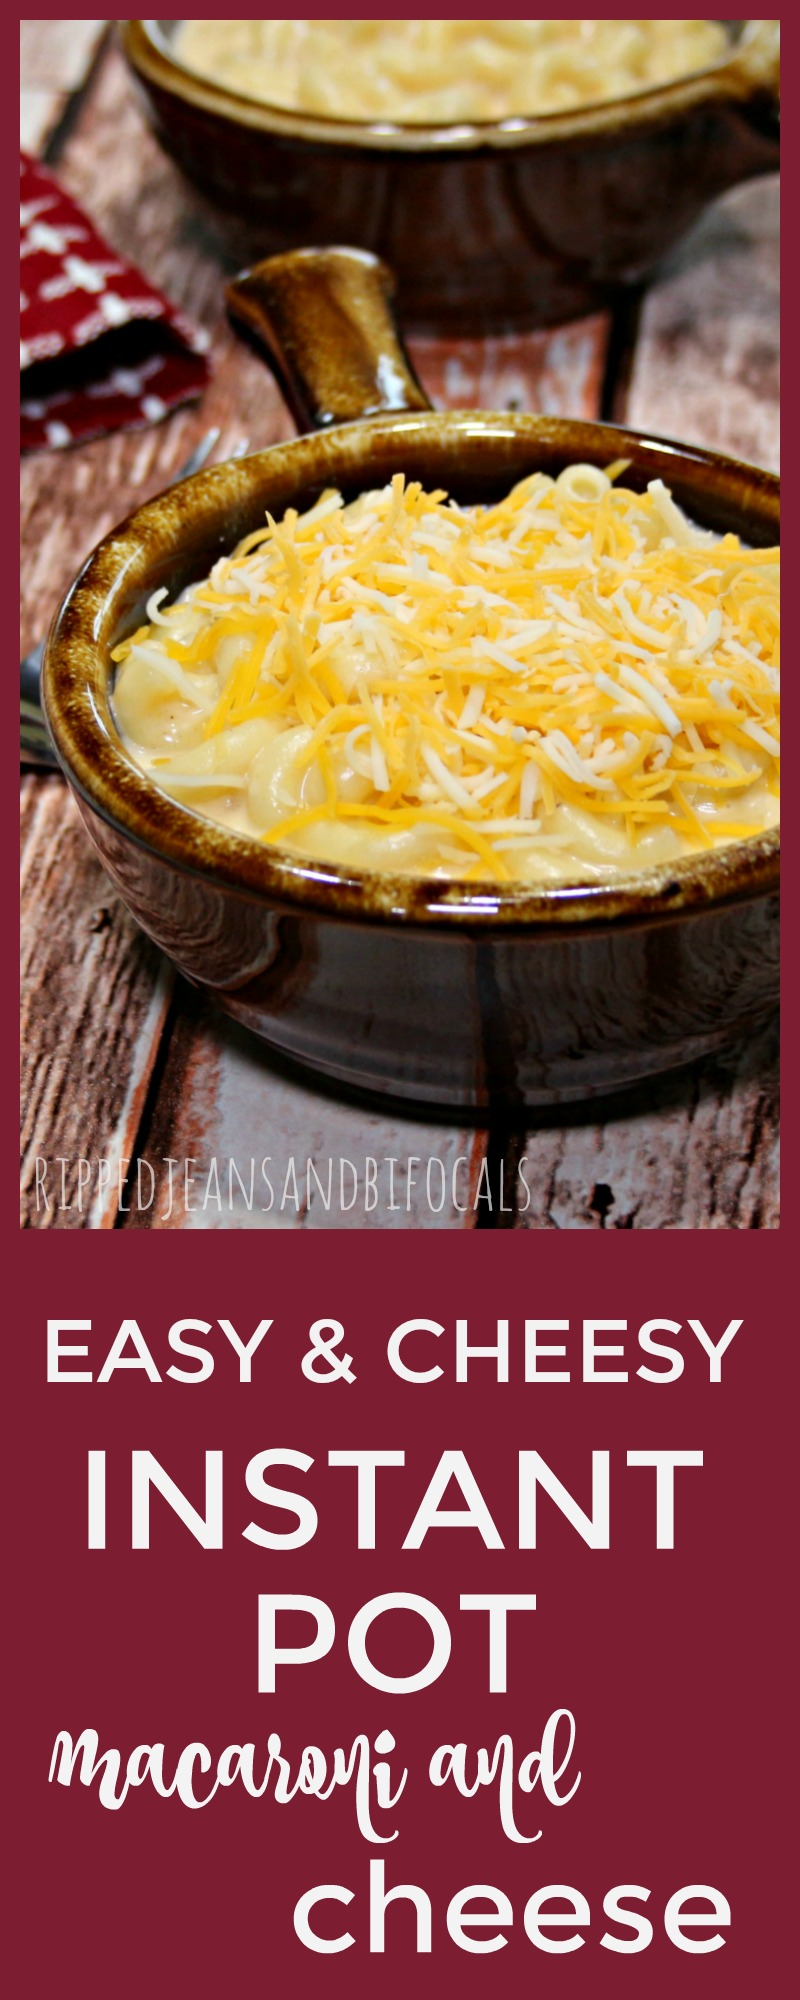 This creamy Instant Pot macaroni and cheese is incredibly fast and easy to make|Ripped Jeans and Bifocals